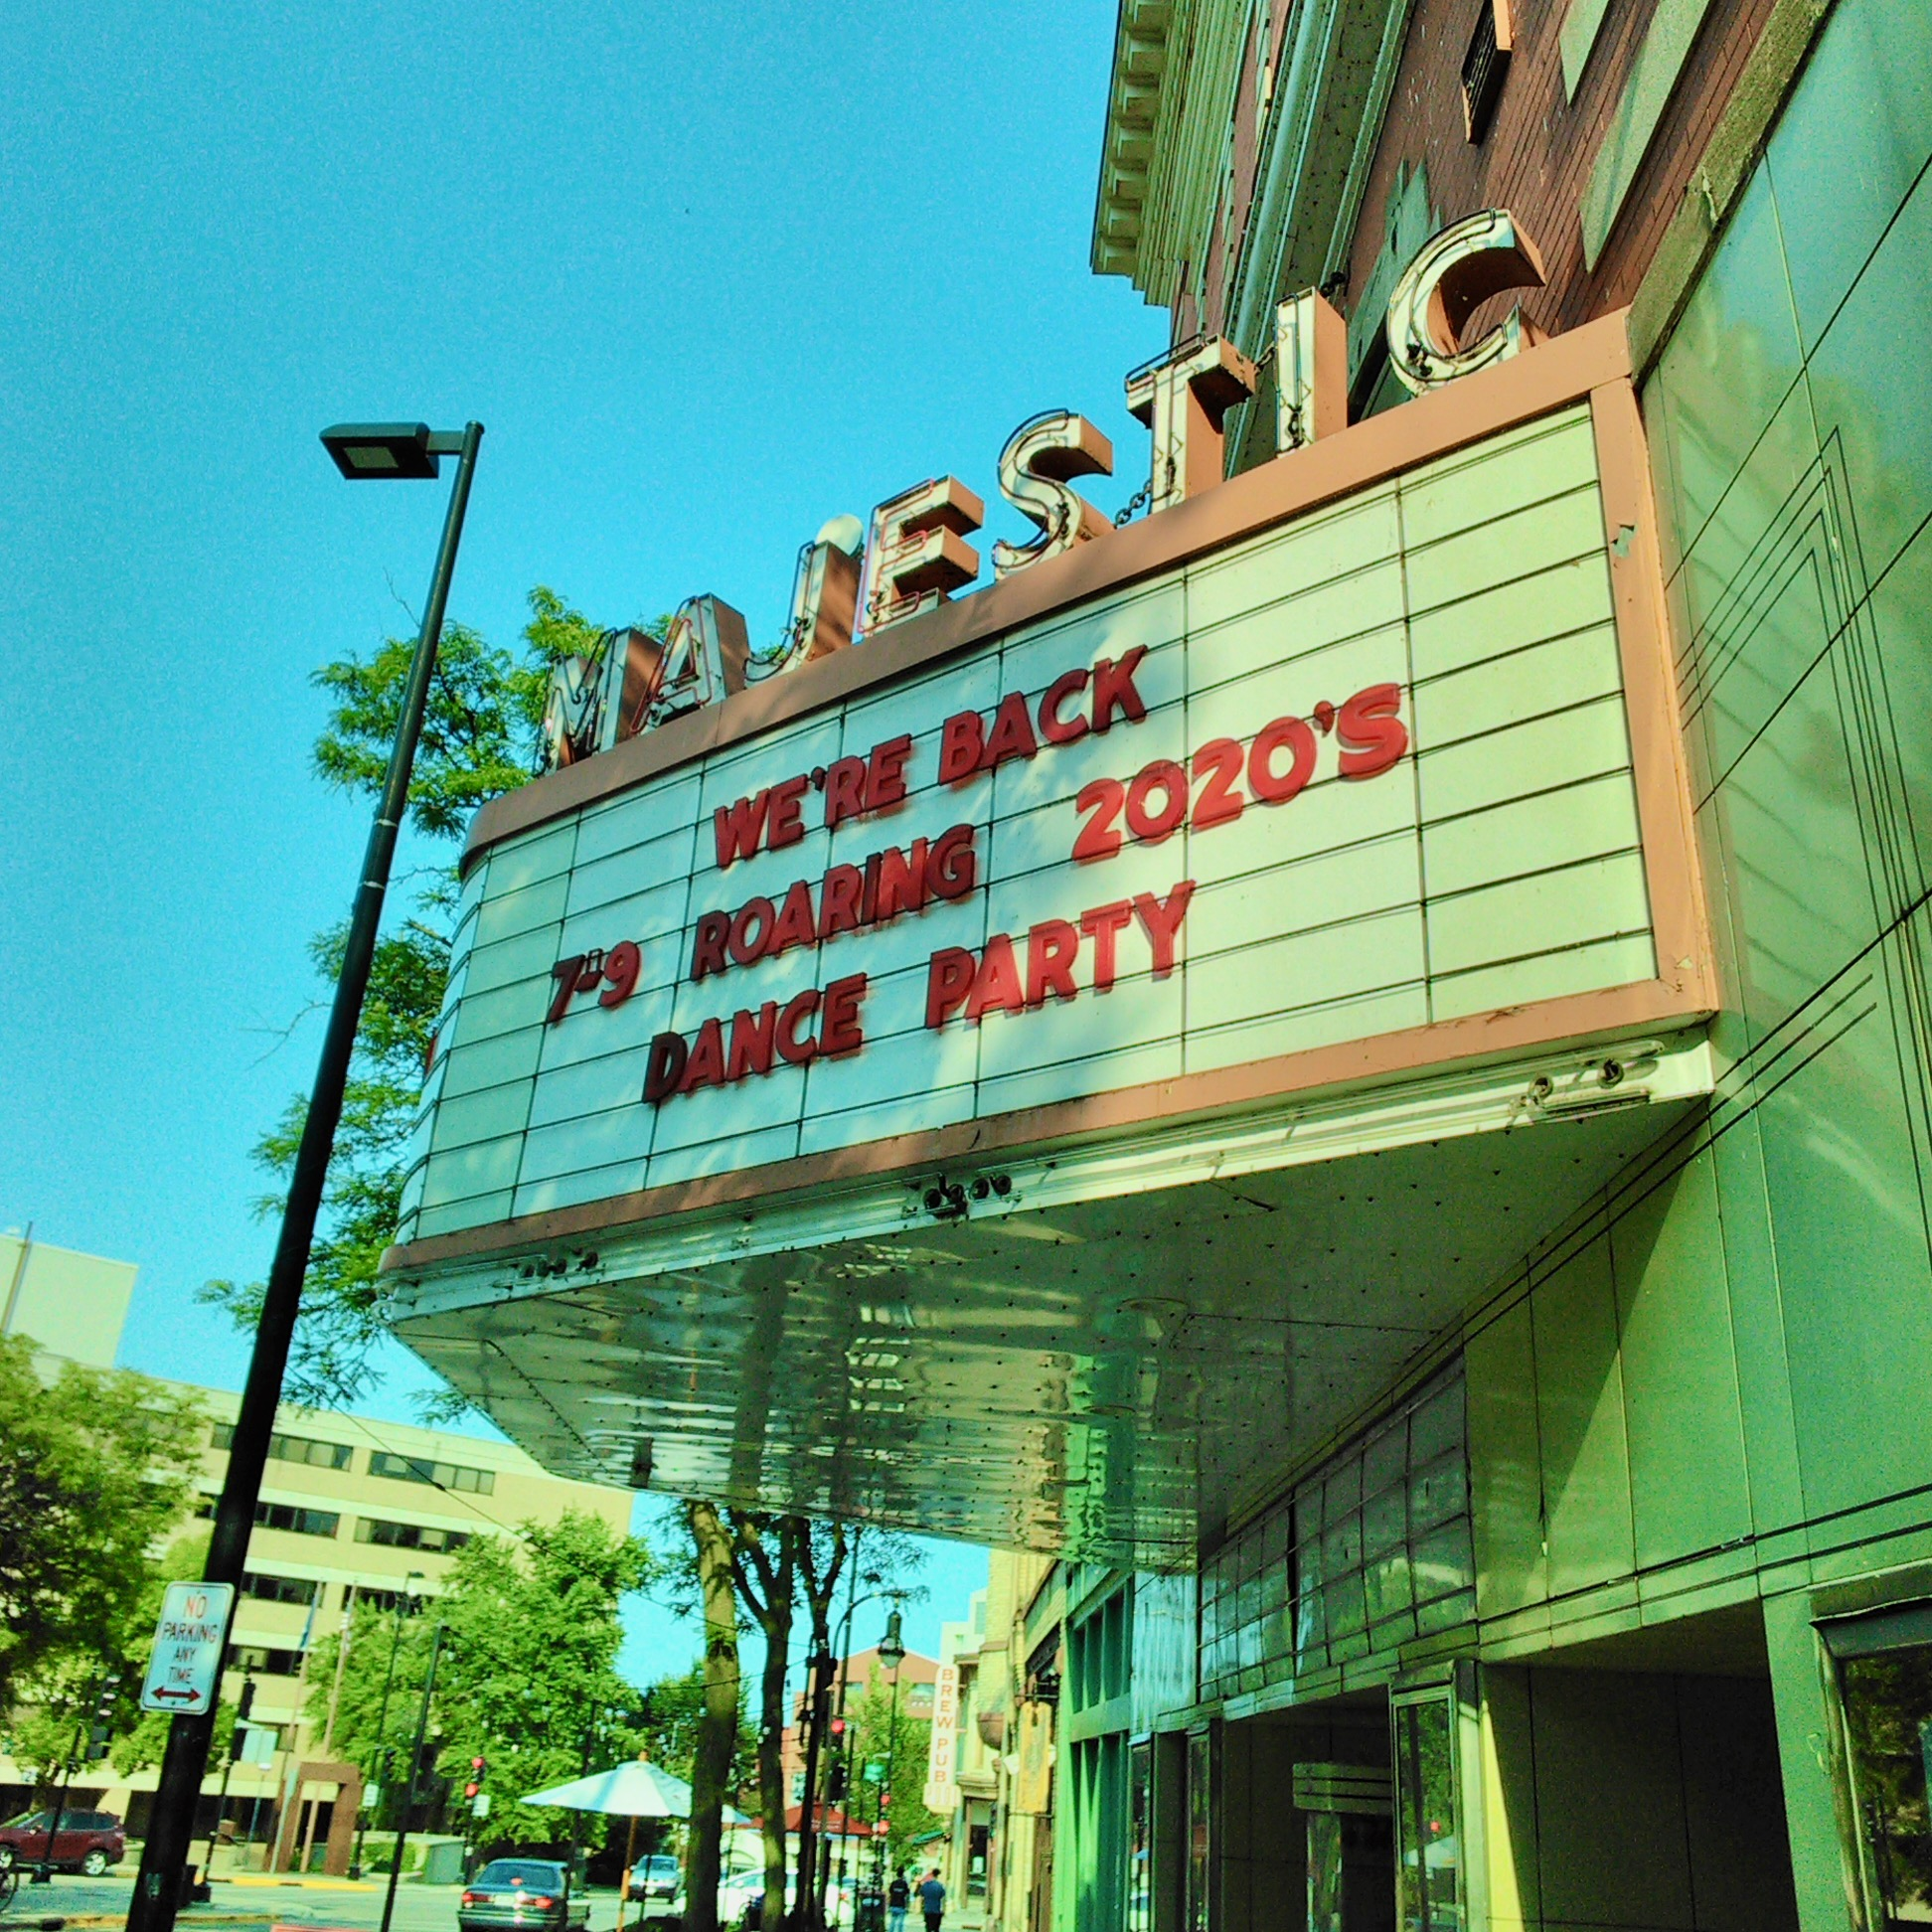 Majestic Theater Marquee: We're back roaring 2020's dance party